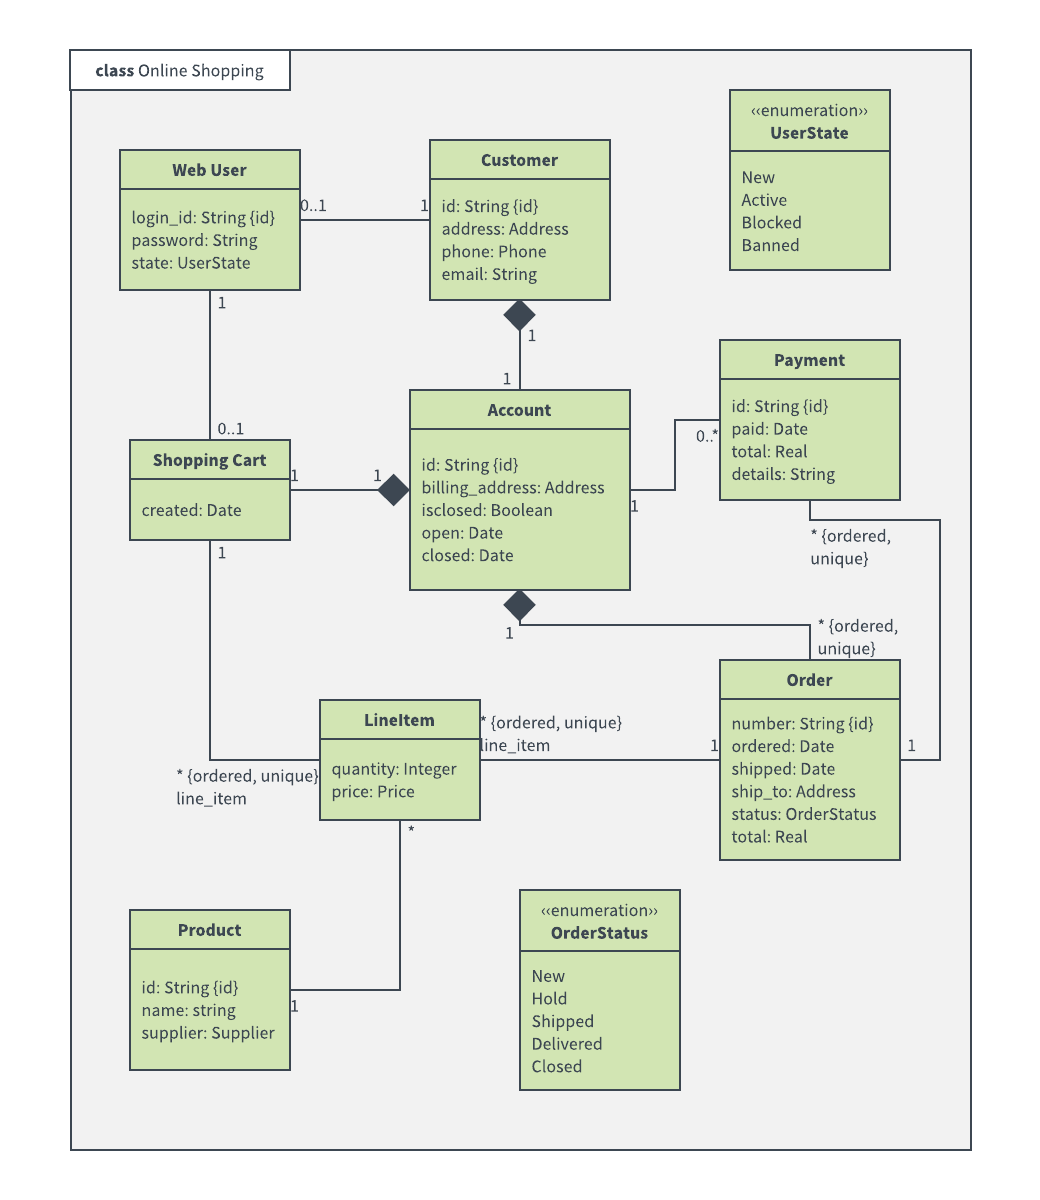 small resolution of online shopping class diagram example diagram softwareonline shopping class diagram example